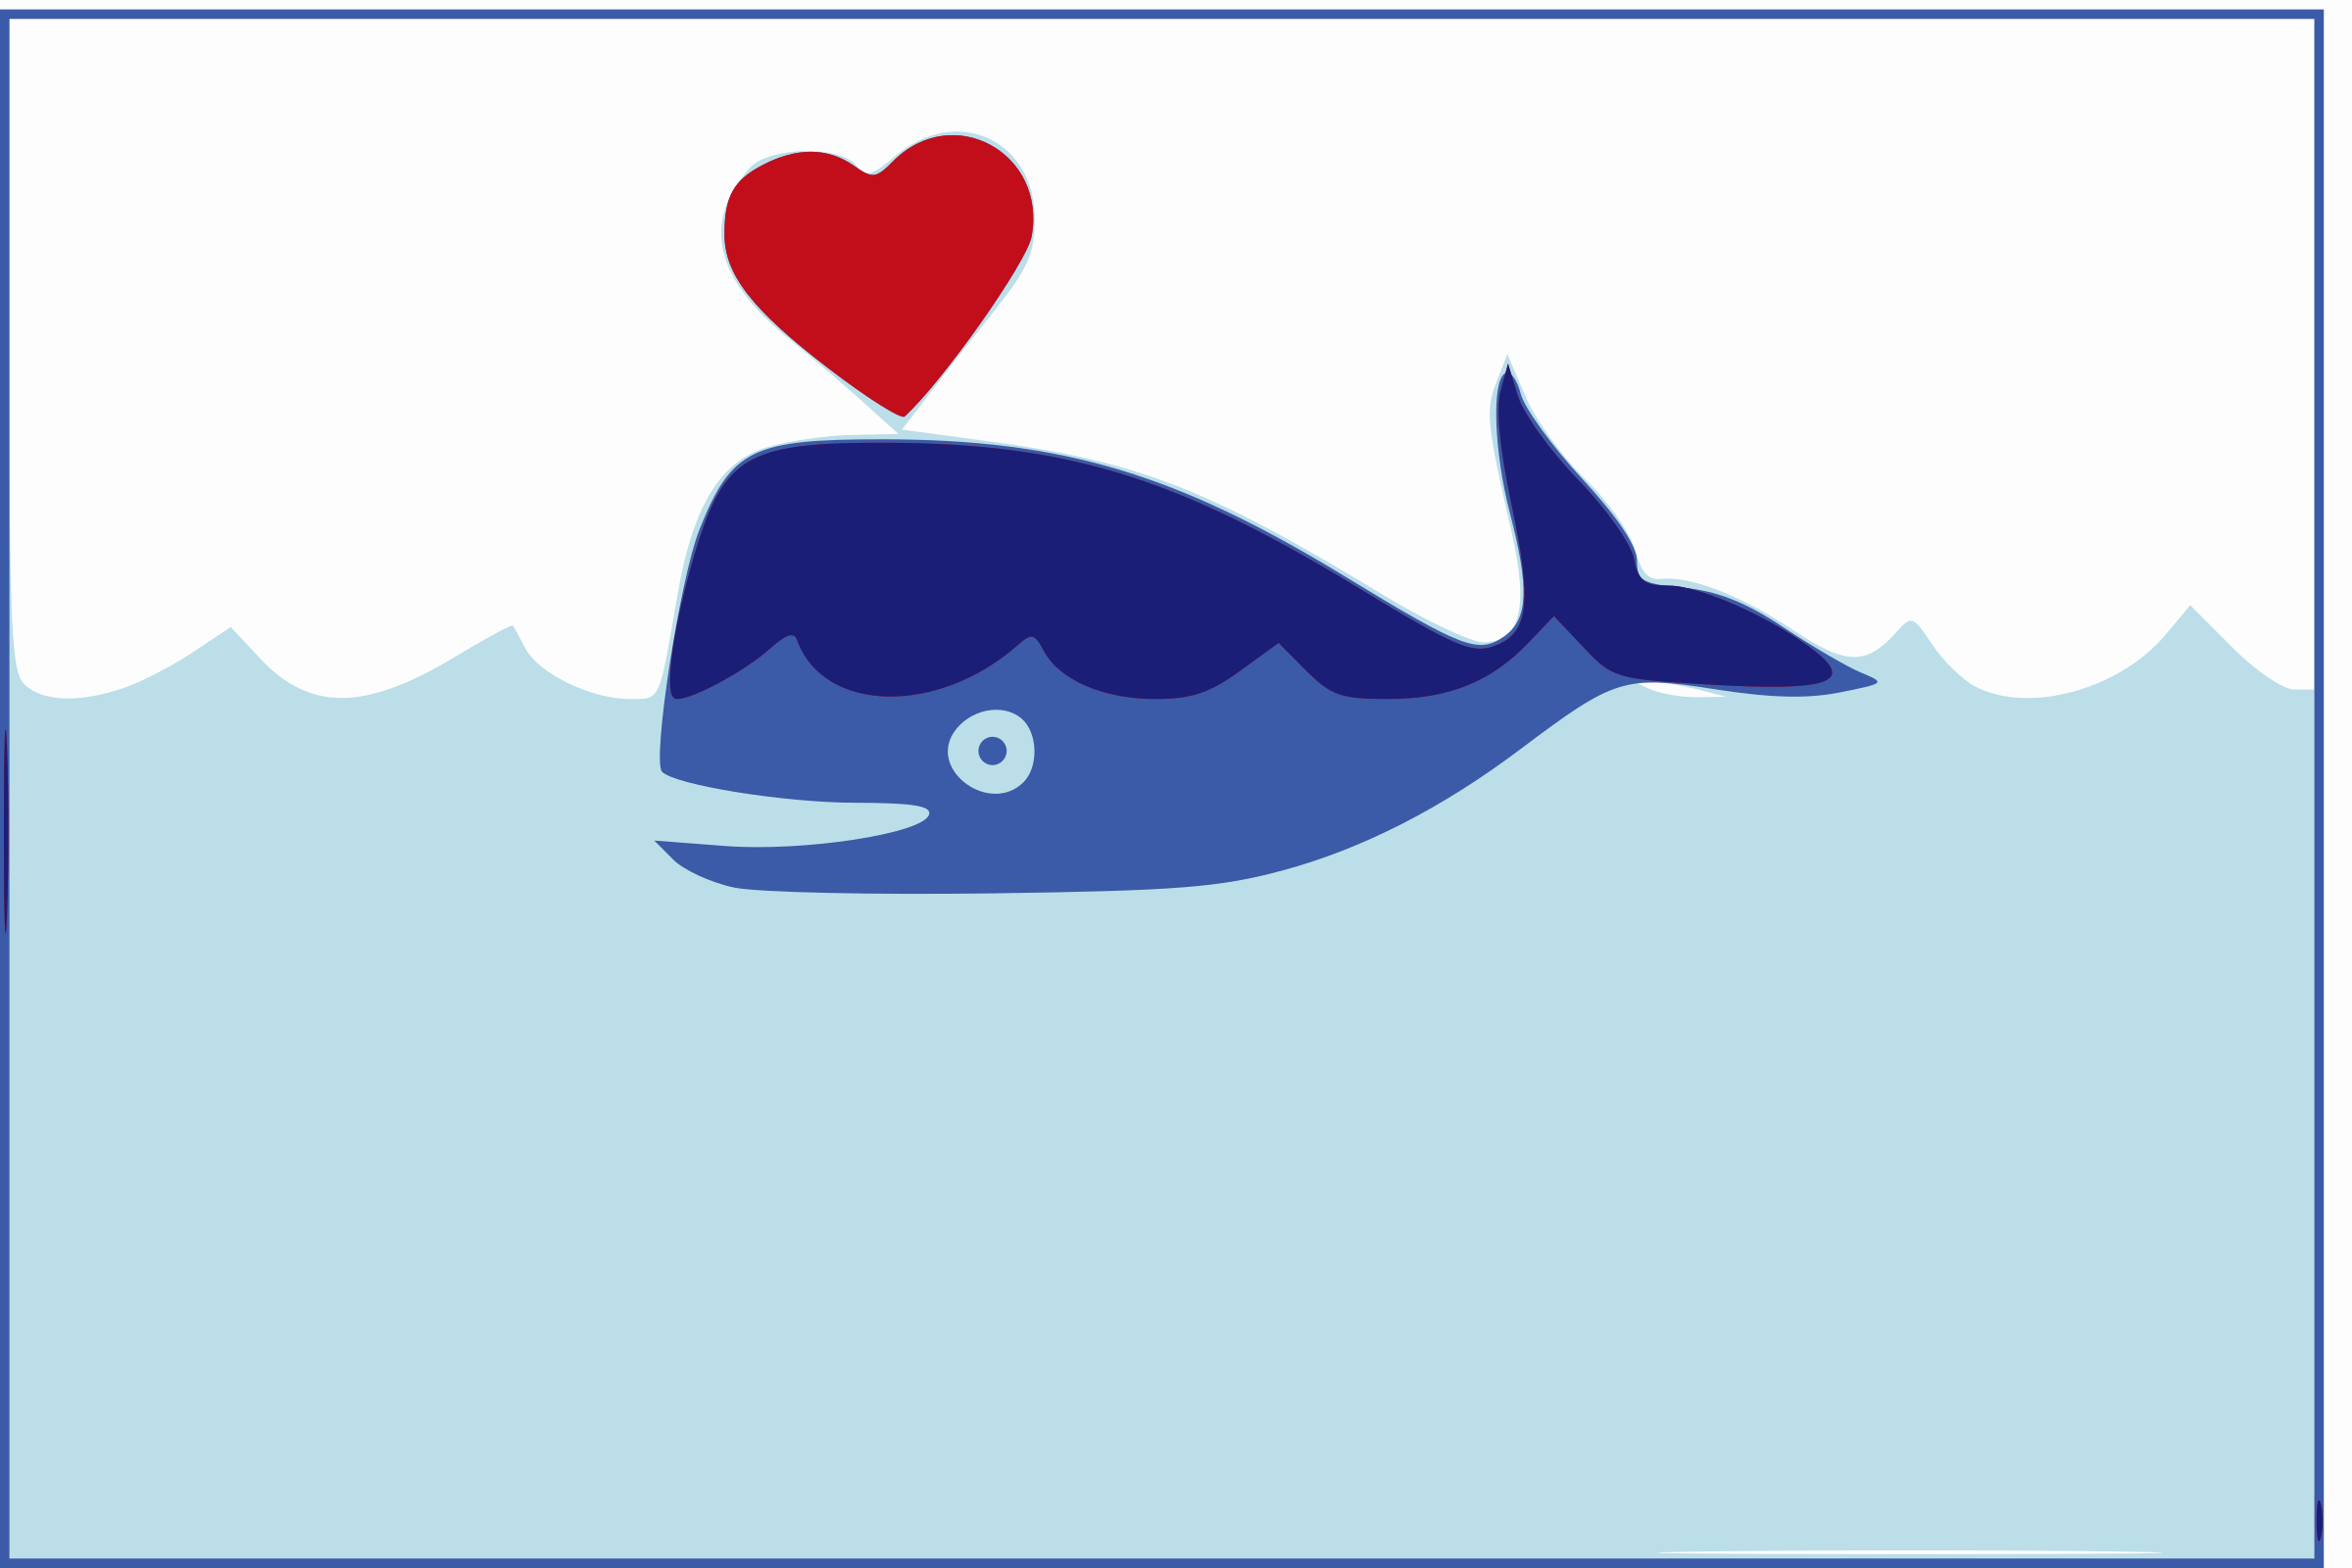 Heart Balloons likewise View further Olivia The Pig Success Performance Coloring Page as well Stock Vector Polygonal Low Poly Art Whale Vector Illustration Water Killer Whales Gr us in addition Fish Coloring Pages. on large cartoon whale